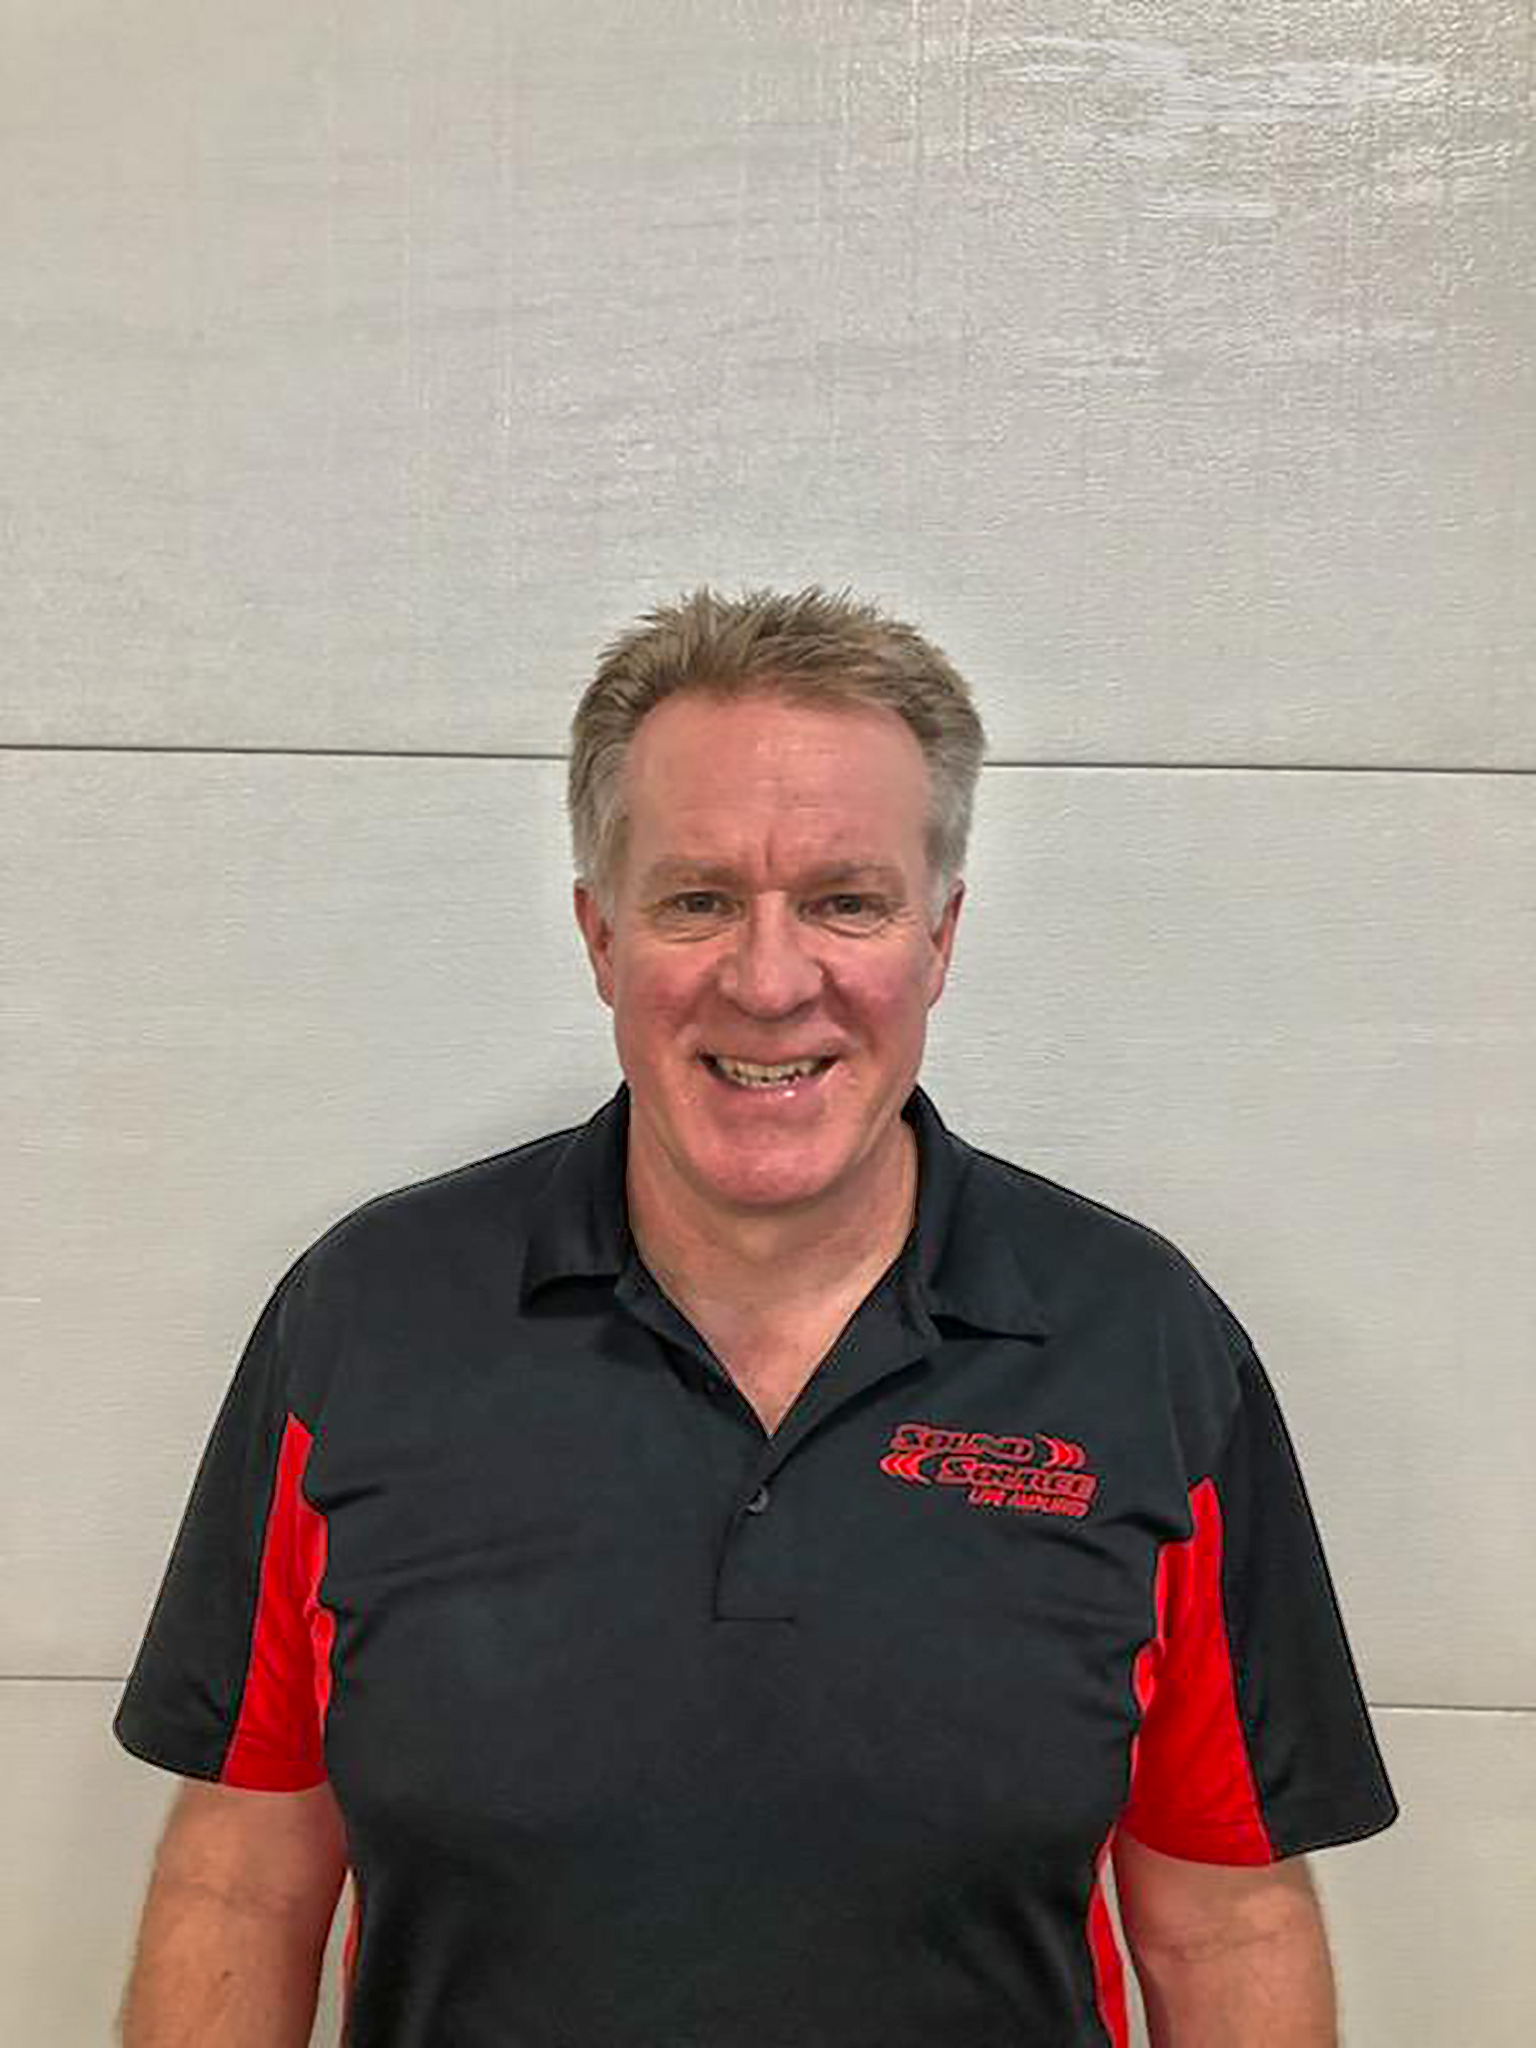 Kyle Bluemel - Kyle is the founder and owner of Sound Source. He has been in the Home and Car audio industry for over 34 years. Kyle is full of knowledge, so when we can't figure something out, Kyle is the person we seek for advice.